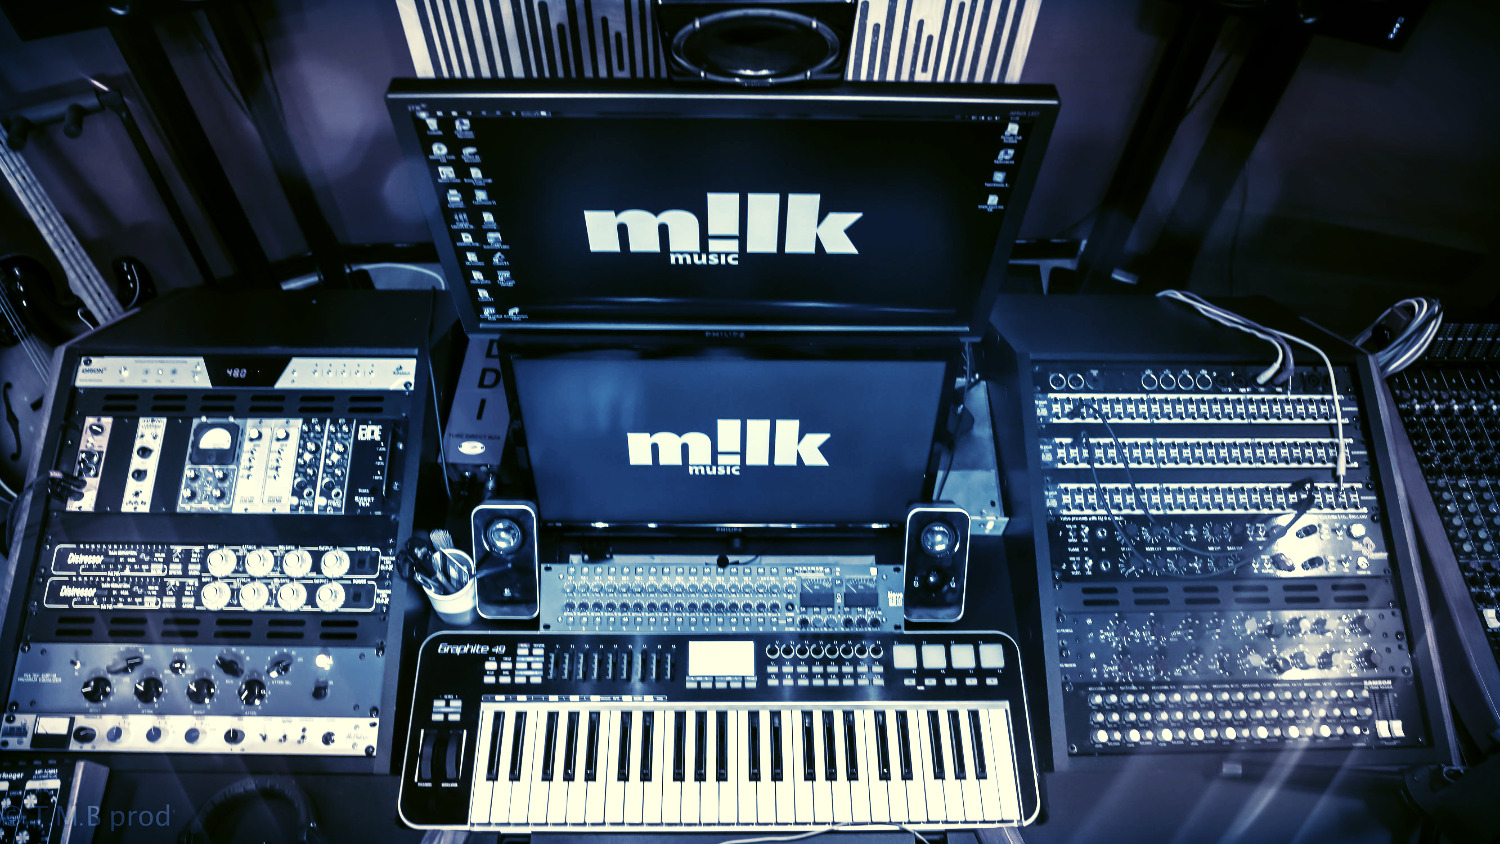 MILK MUSIC STUDIO